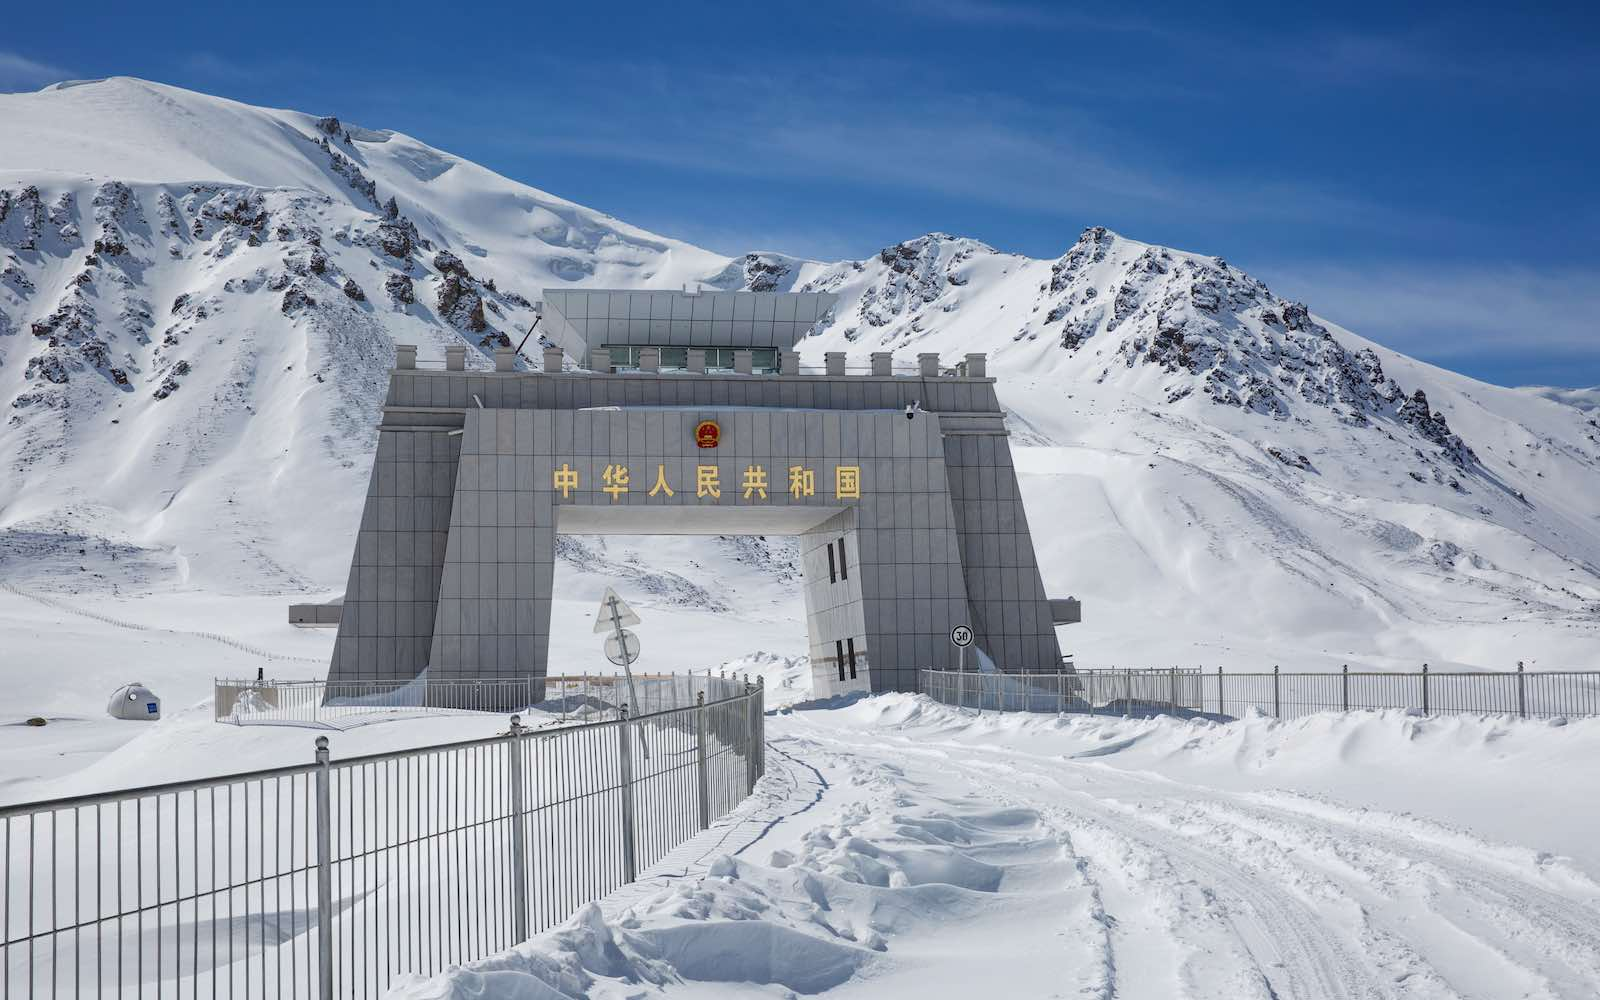 The Khunjerab Pass at the border of China and Pakistan on the Karakoram Highway (Getty Images)